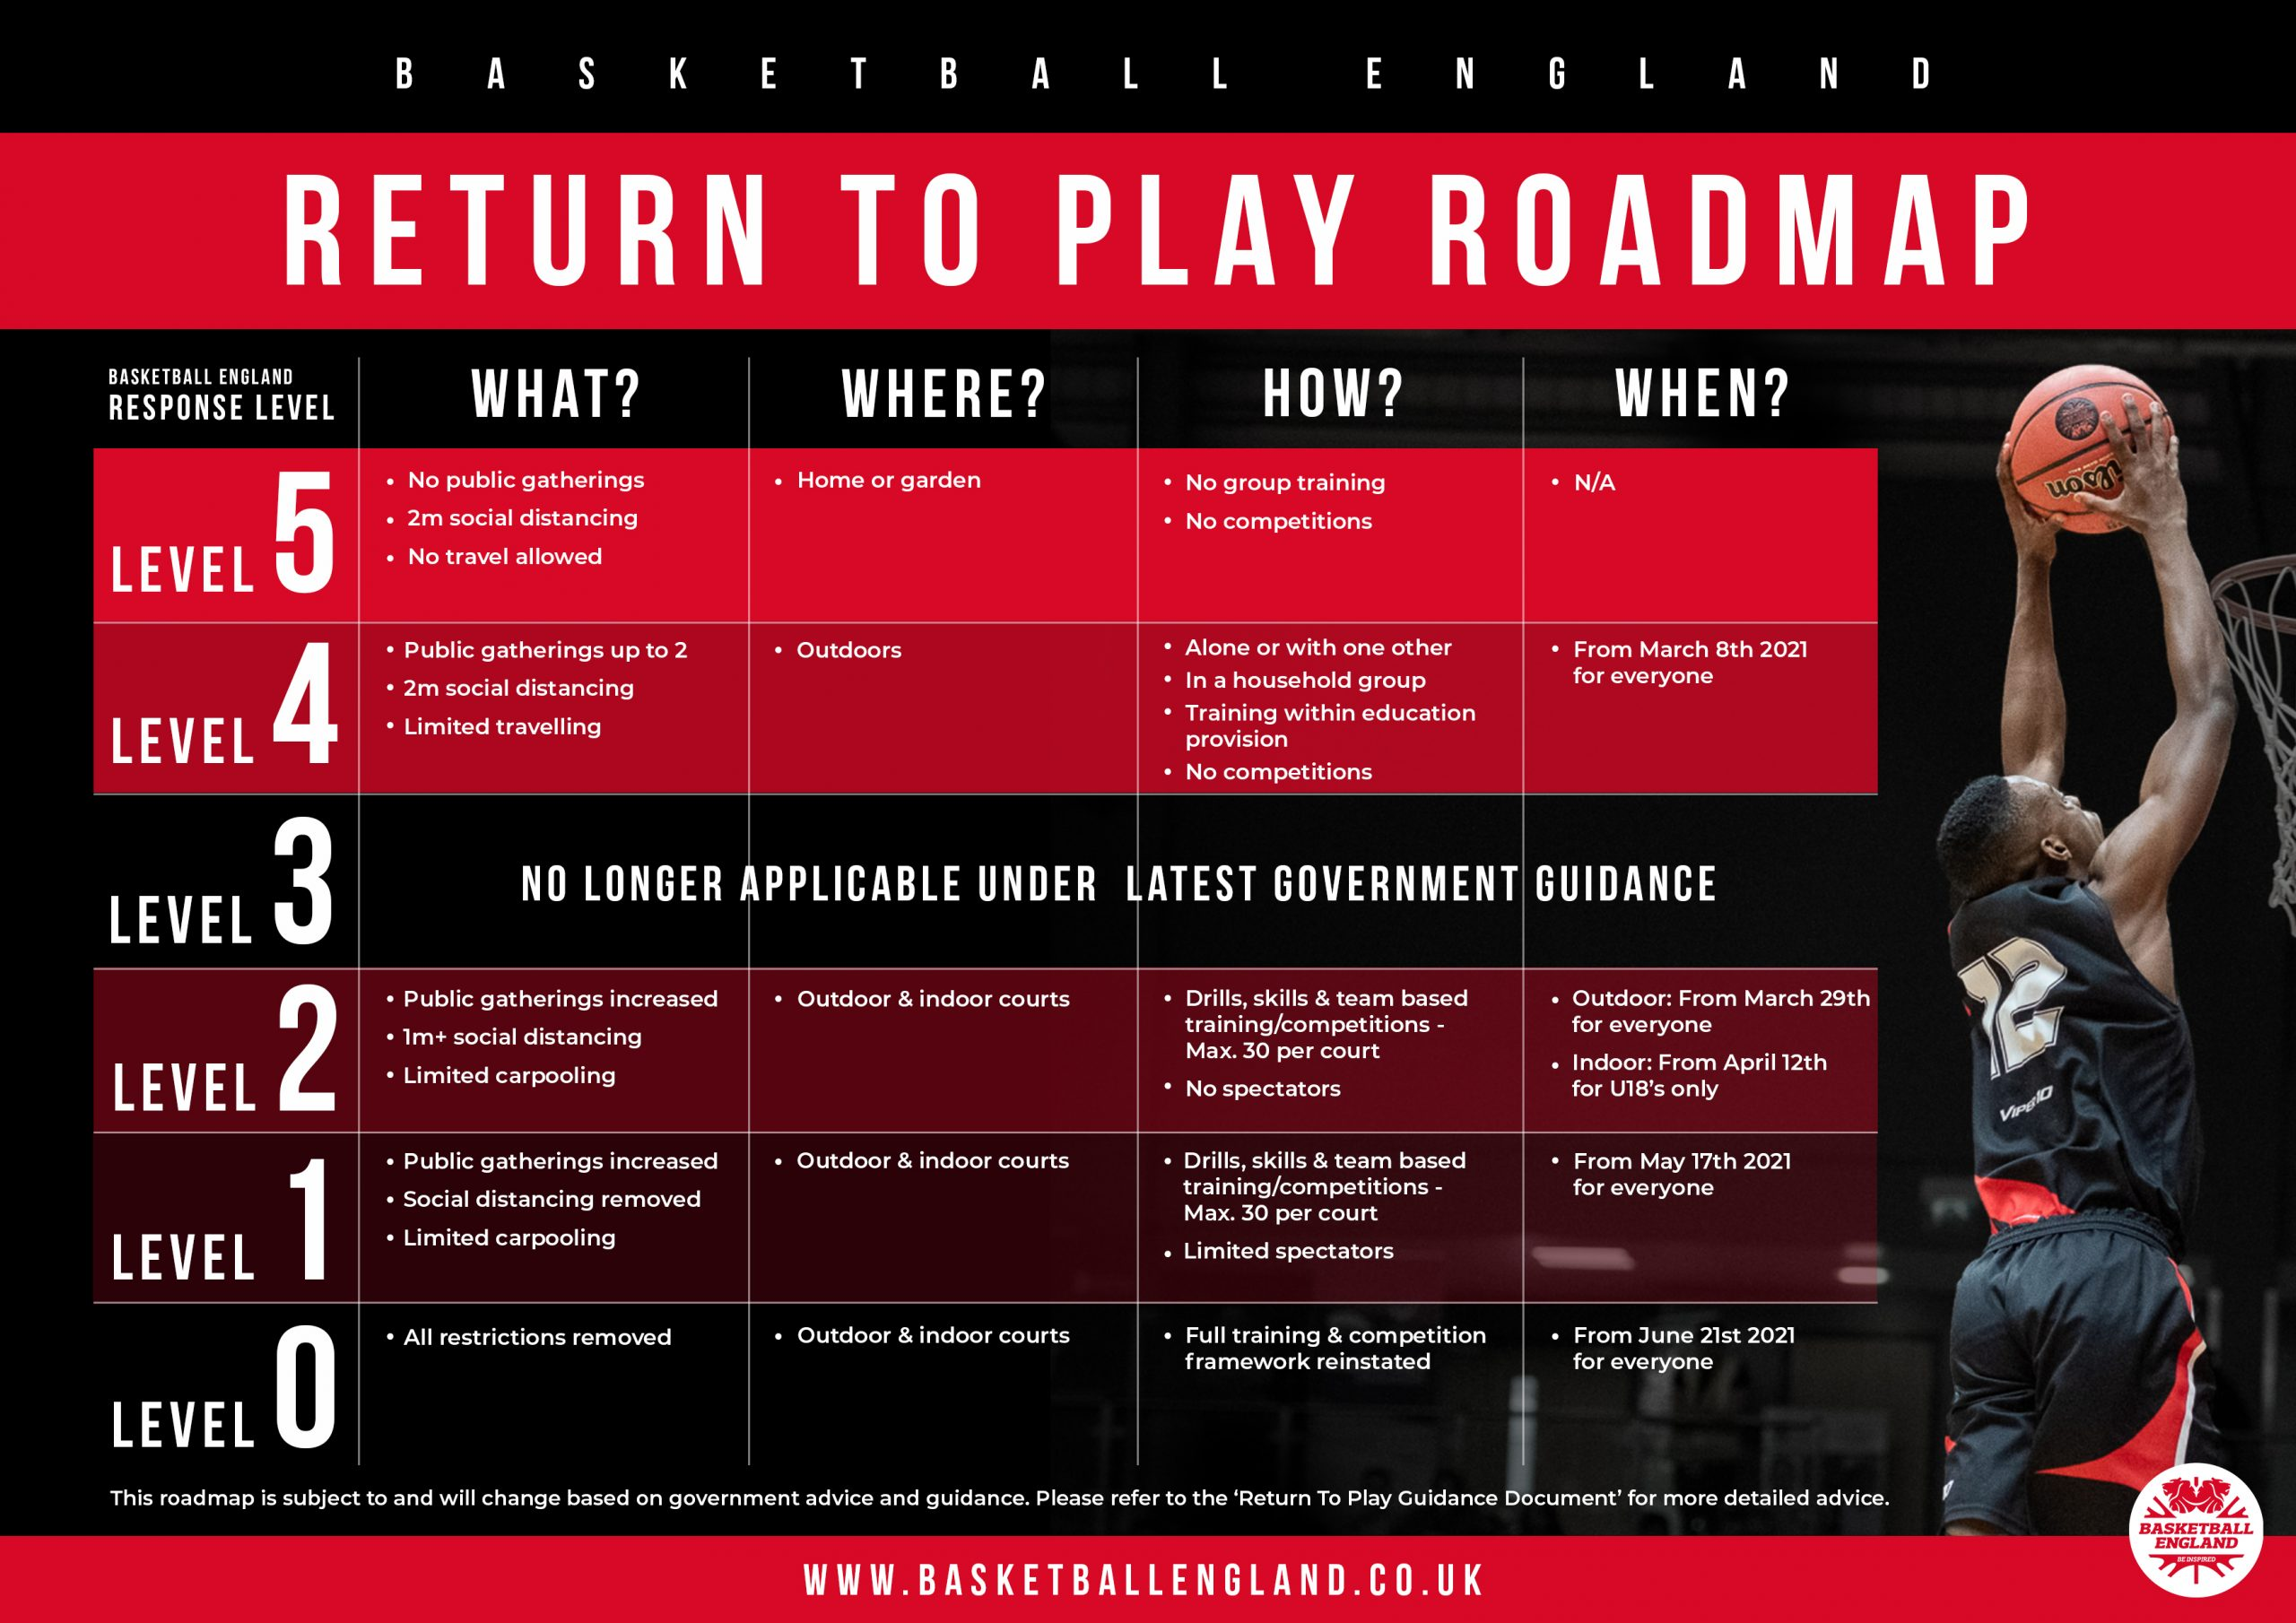 return to play roadmap